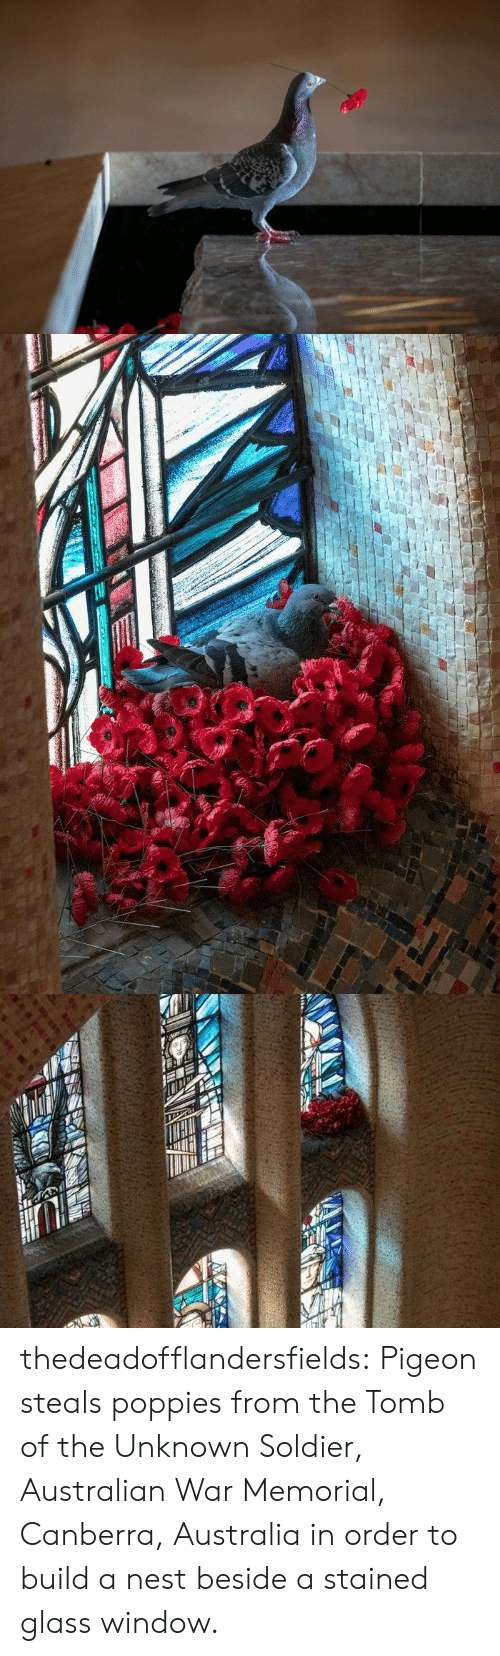 unknown: thedeadofflandersfields:  Pigeon steals poppies from the Tomb of the Unknown Soldier, Australian War Memorial, Canberra, Australia in order to build a nest beside a stained glass window.